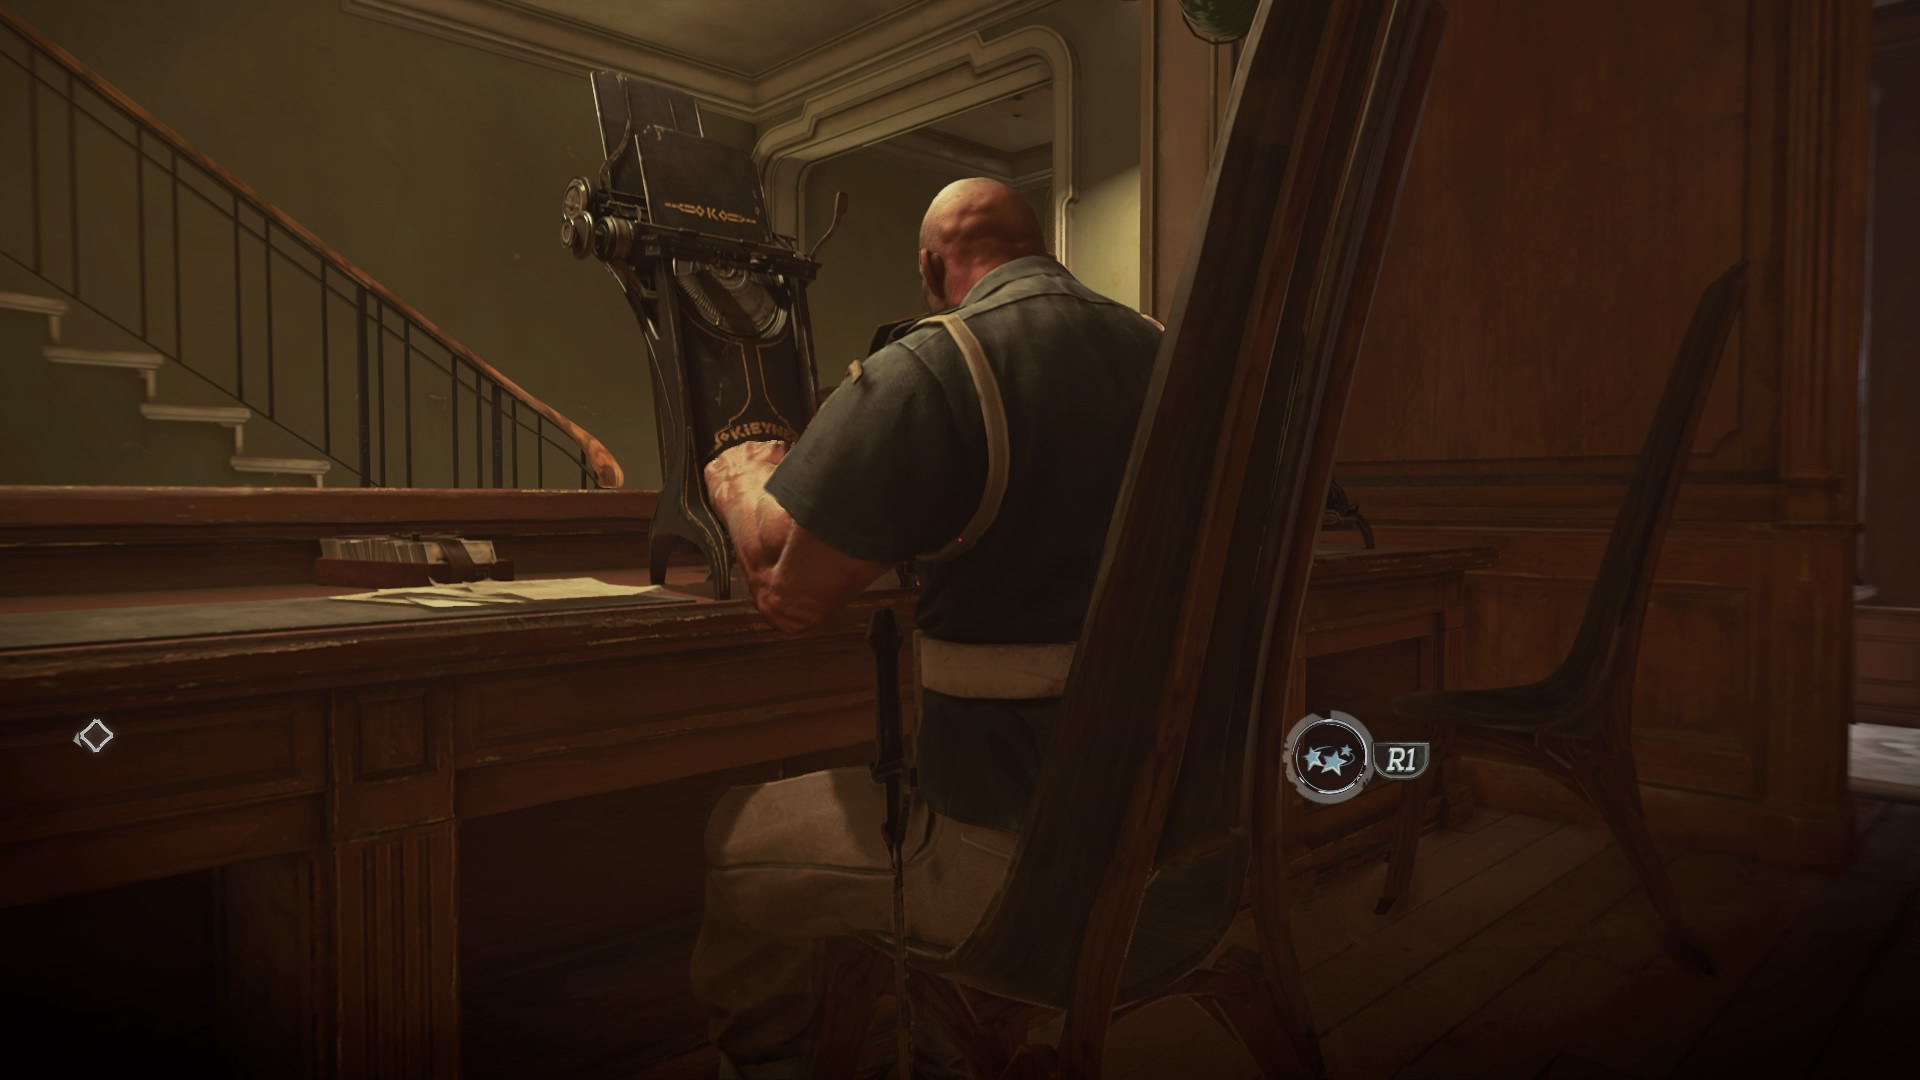 How To Get Out Of Piano Room Dishonored